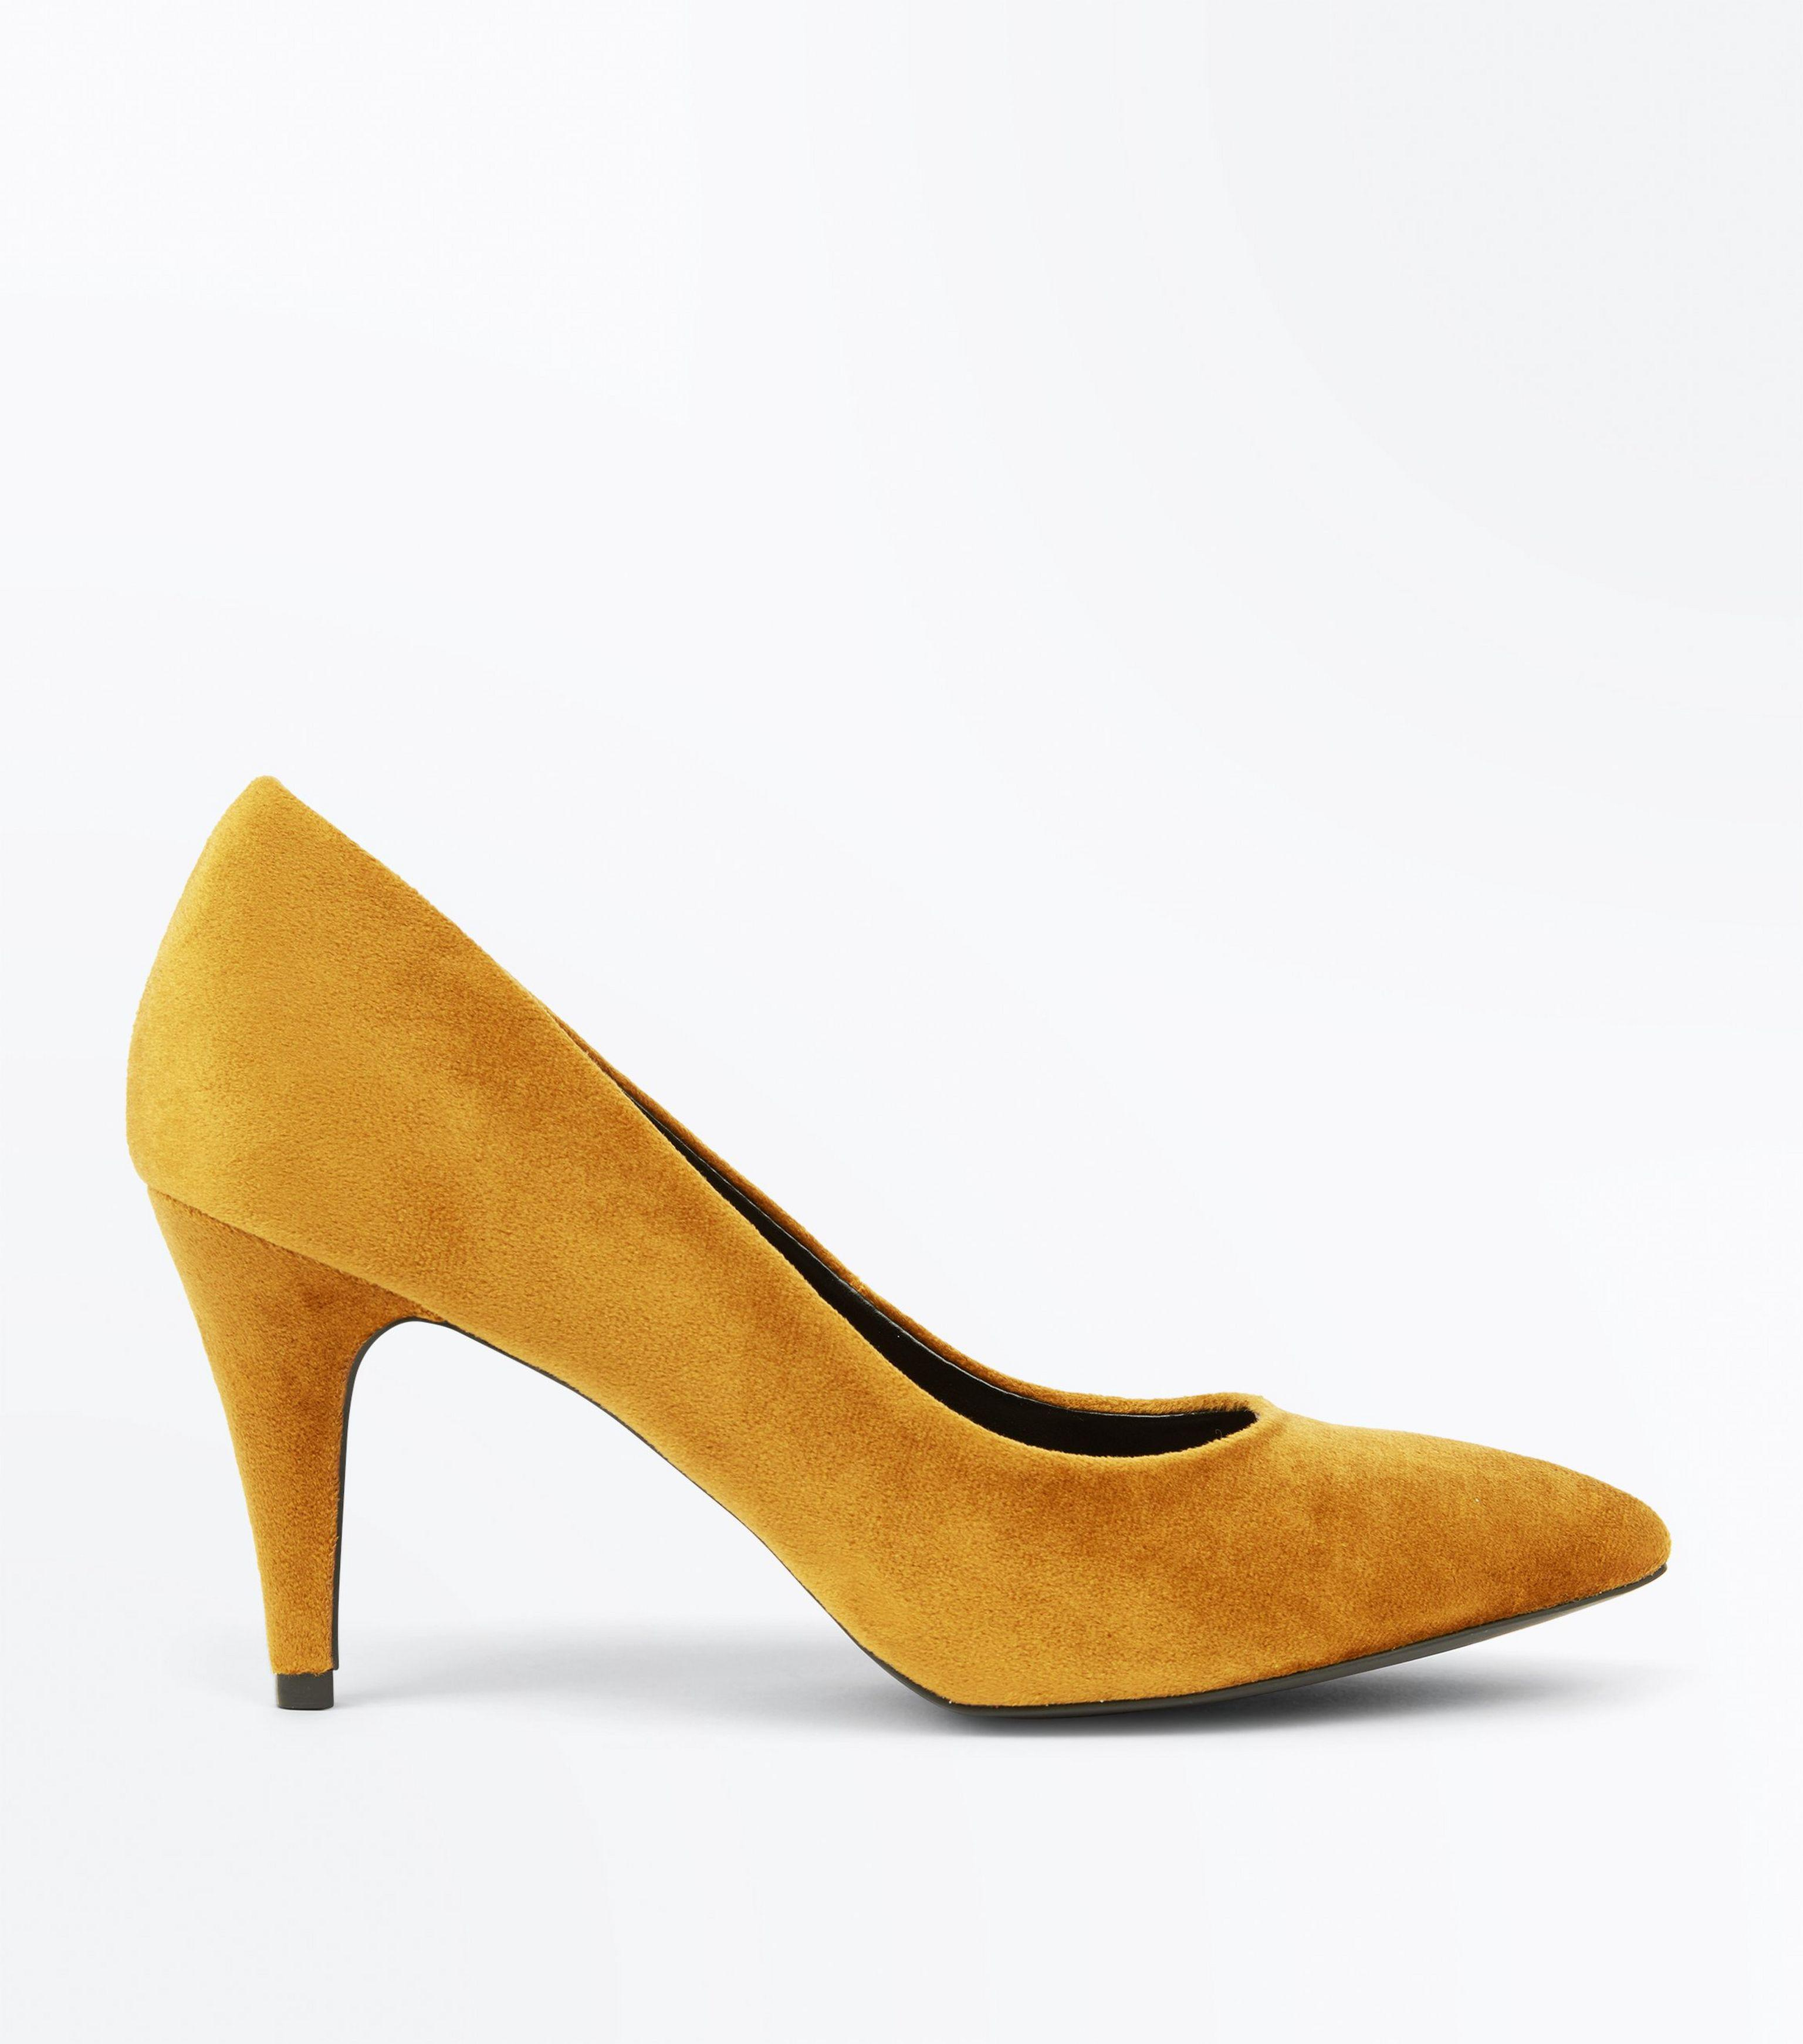 a569dbae61f New Look Mustard Yellow Crushed Velvet Pointed Court Shoes - Lyst